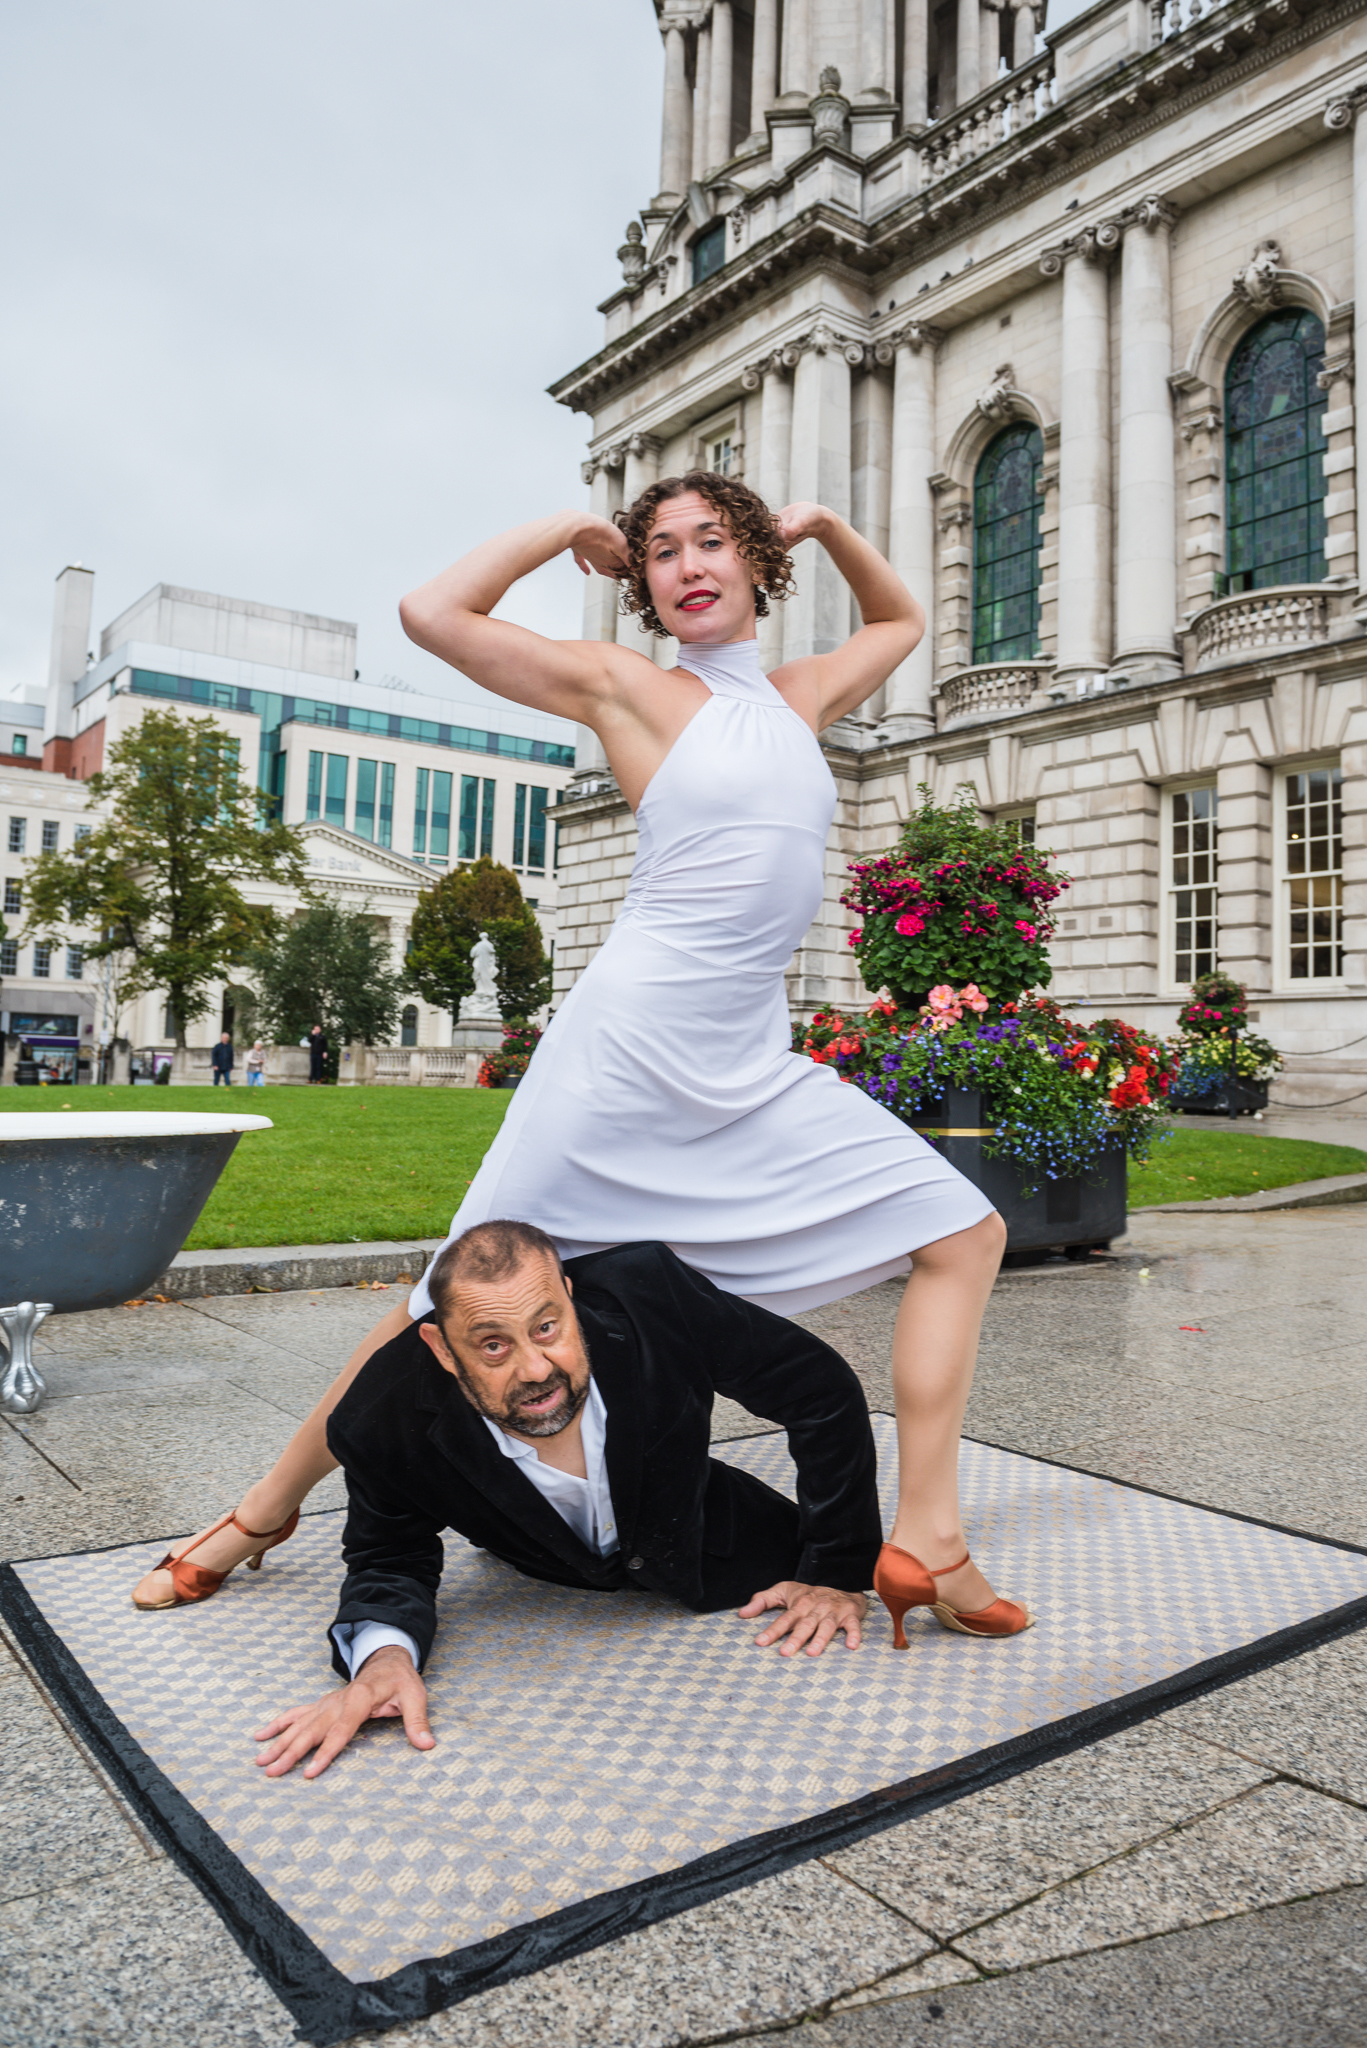 Bounce Arts Festival launched in style at Belfast City Hall